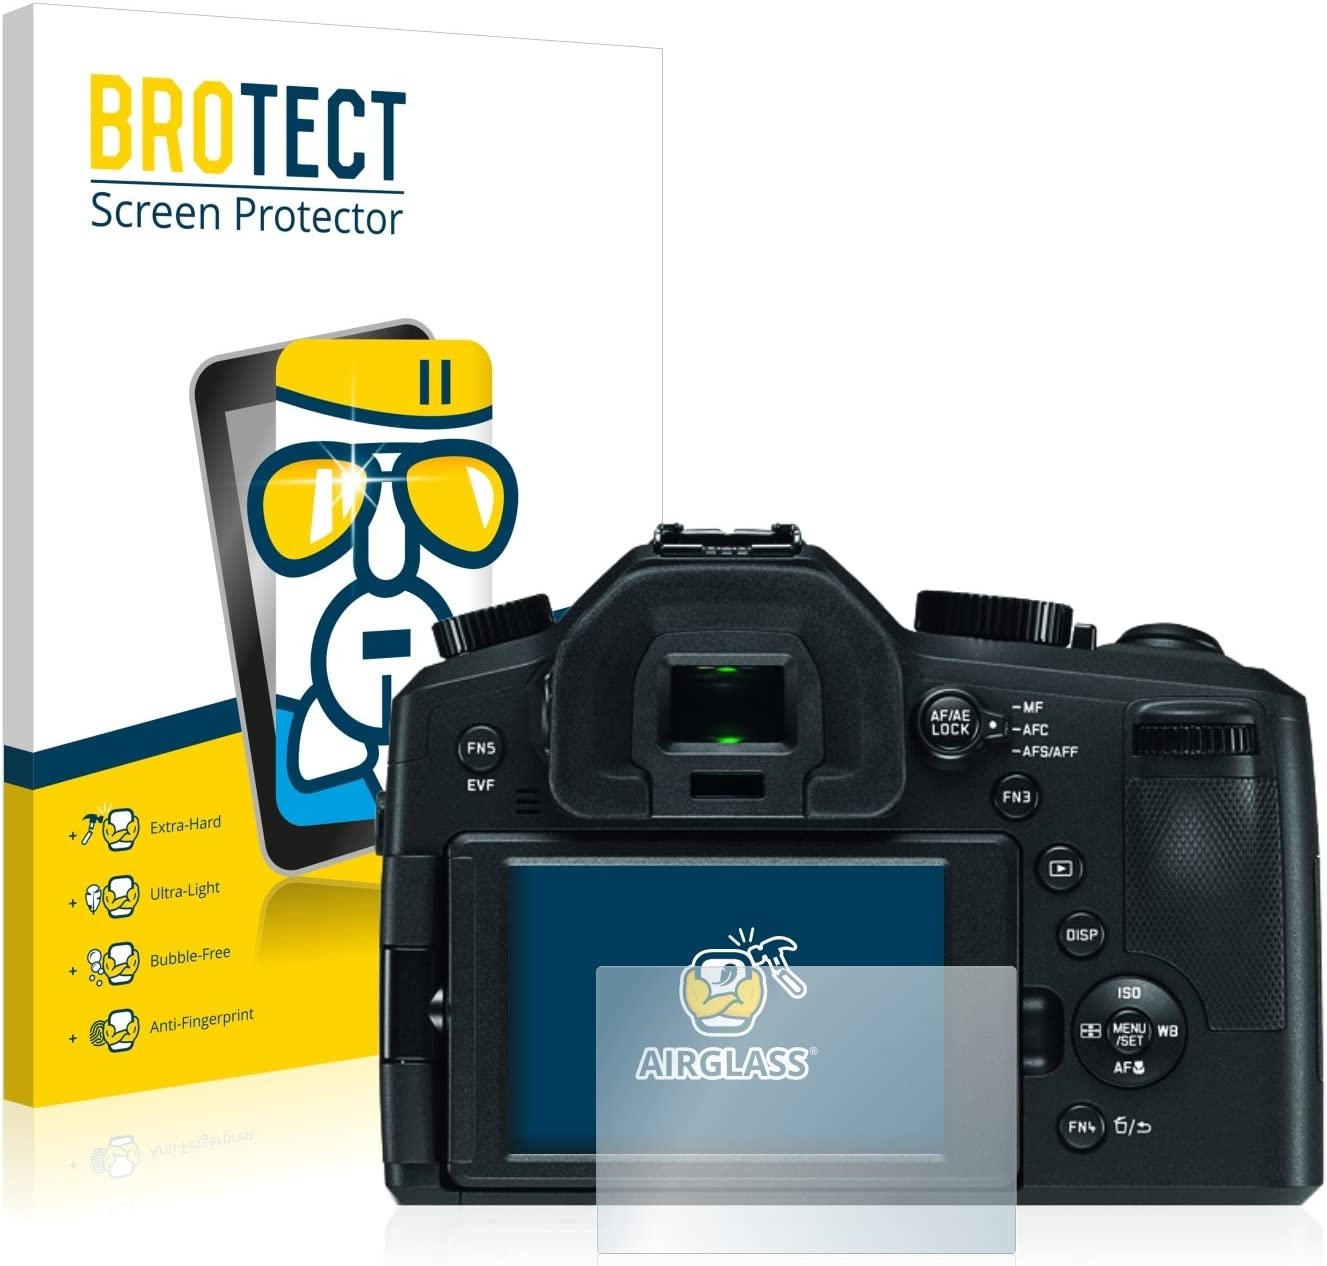 AirGlass Typ 114 9H Glass Protector brotect Glass Screen Protector compatible with Leica V-LUX